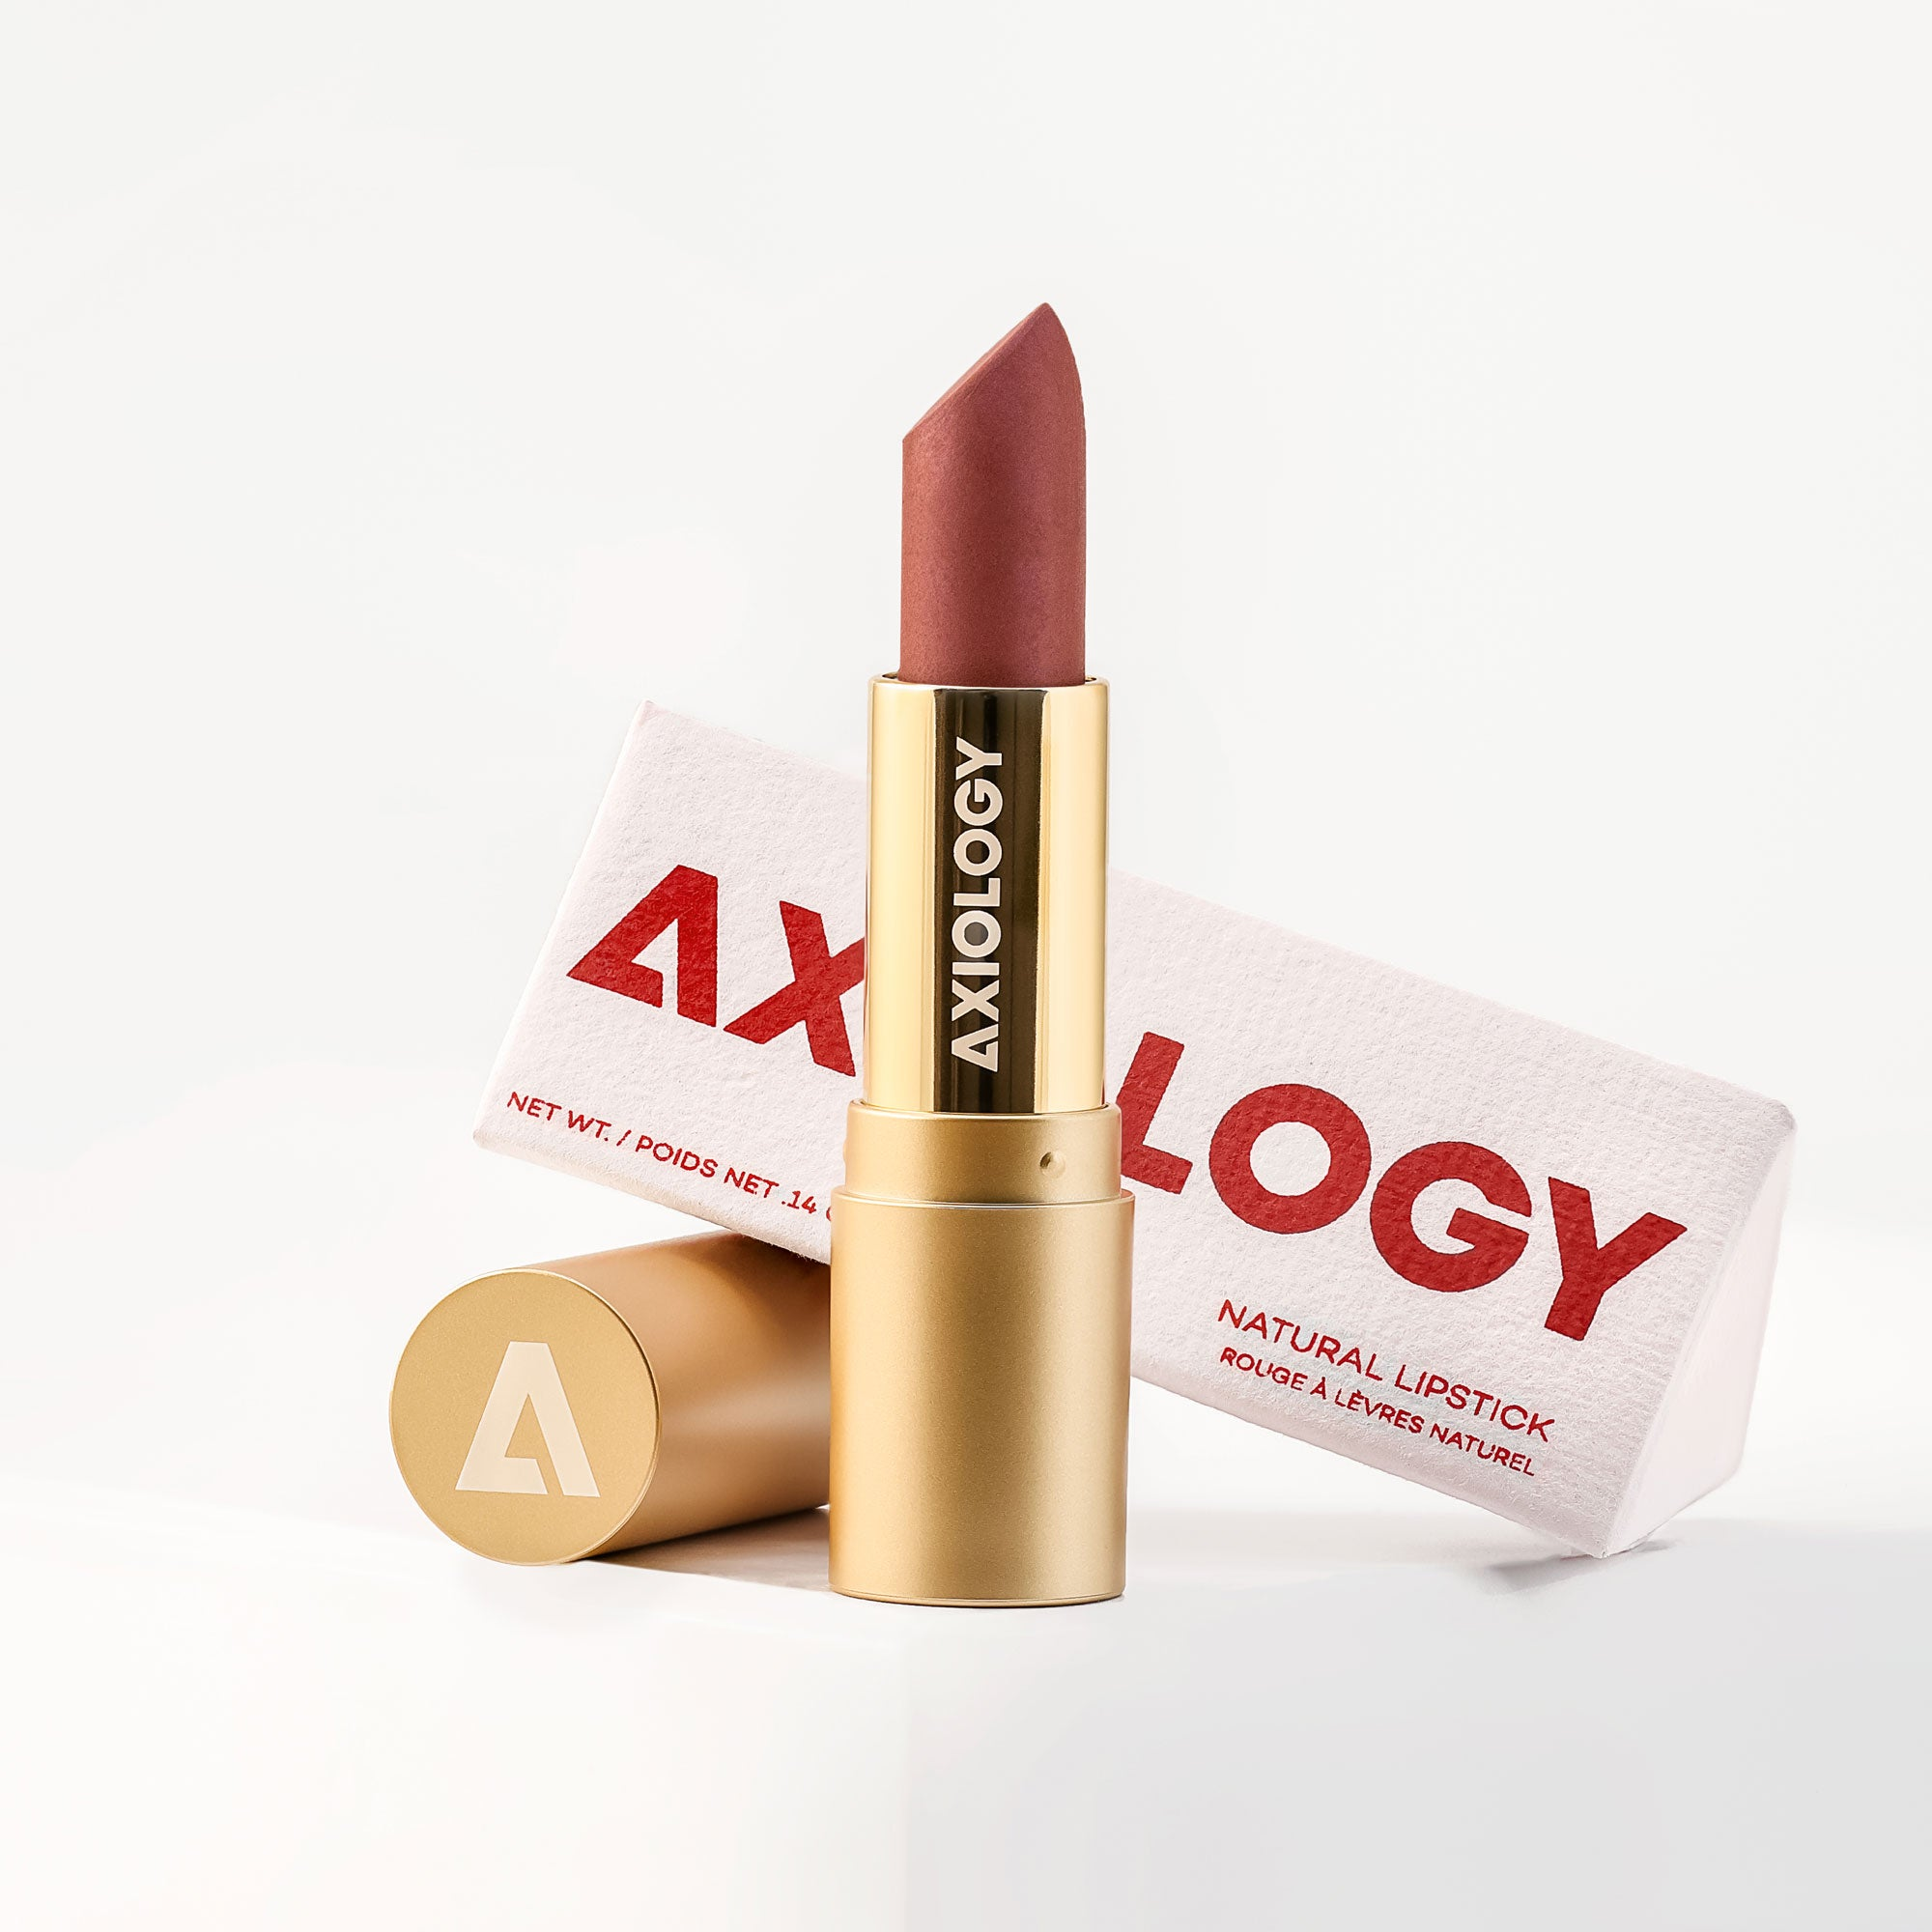 Axiology Beauty JOY 2020